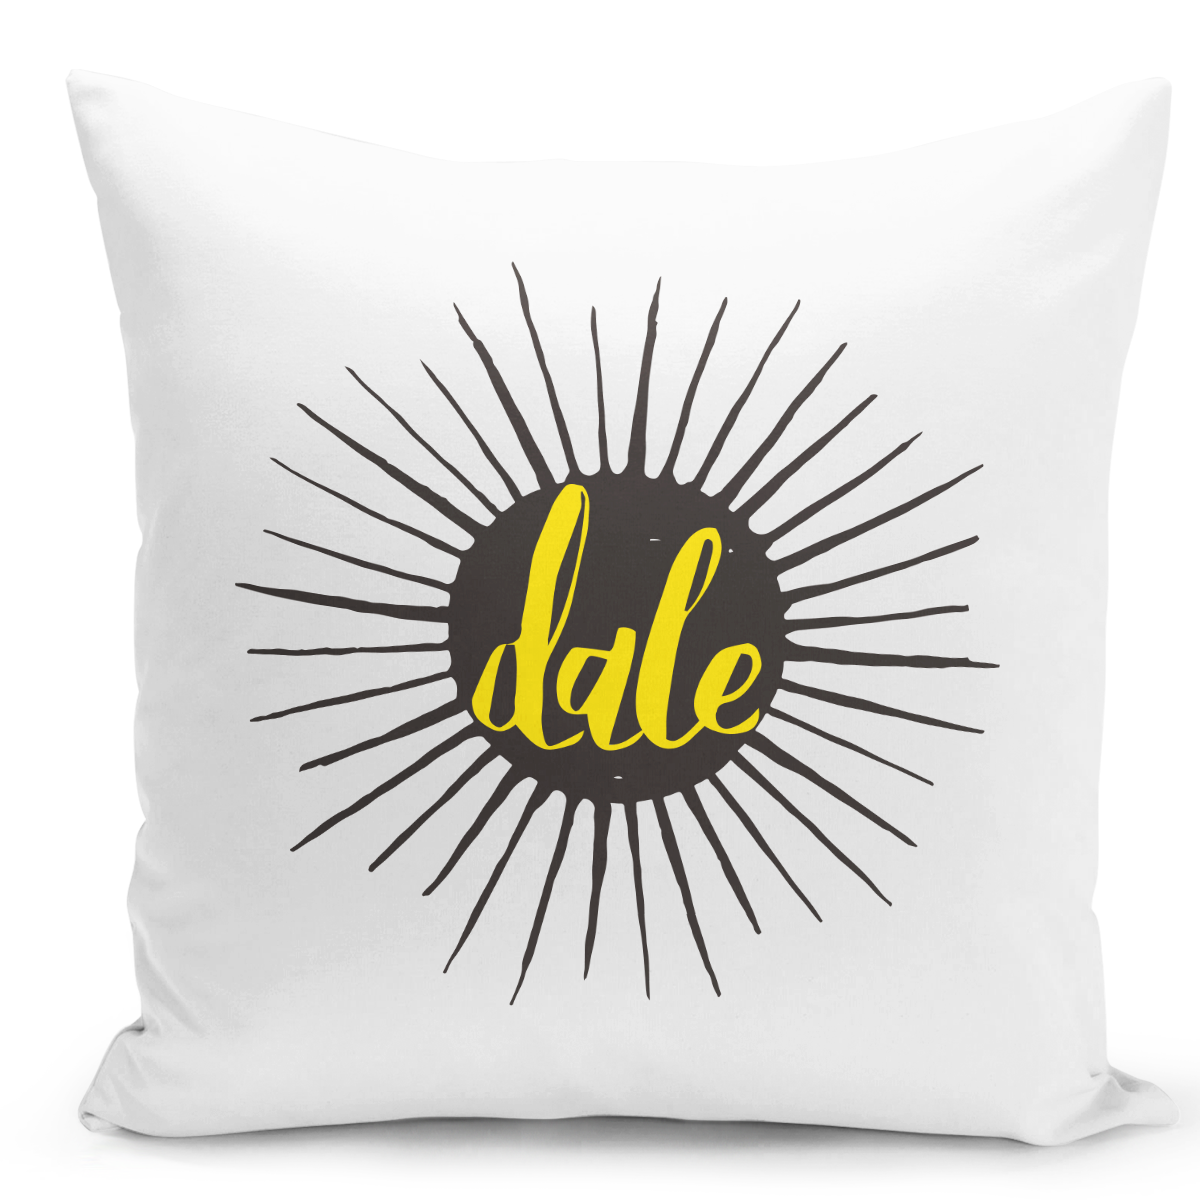 White-Throw-Pillow-Dale-Comic-Style---Durable-White-16-x-16-inch-Square-Modern-Livingroom-Decorative-Pillow-16x16-inch-